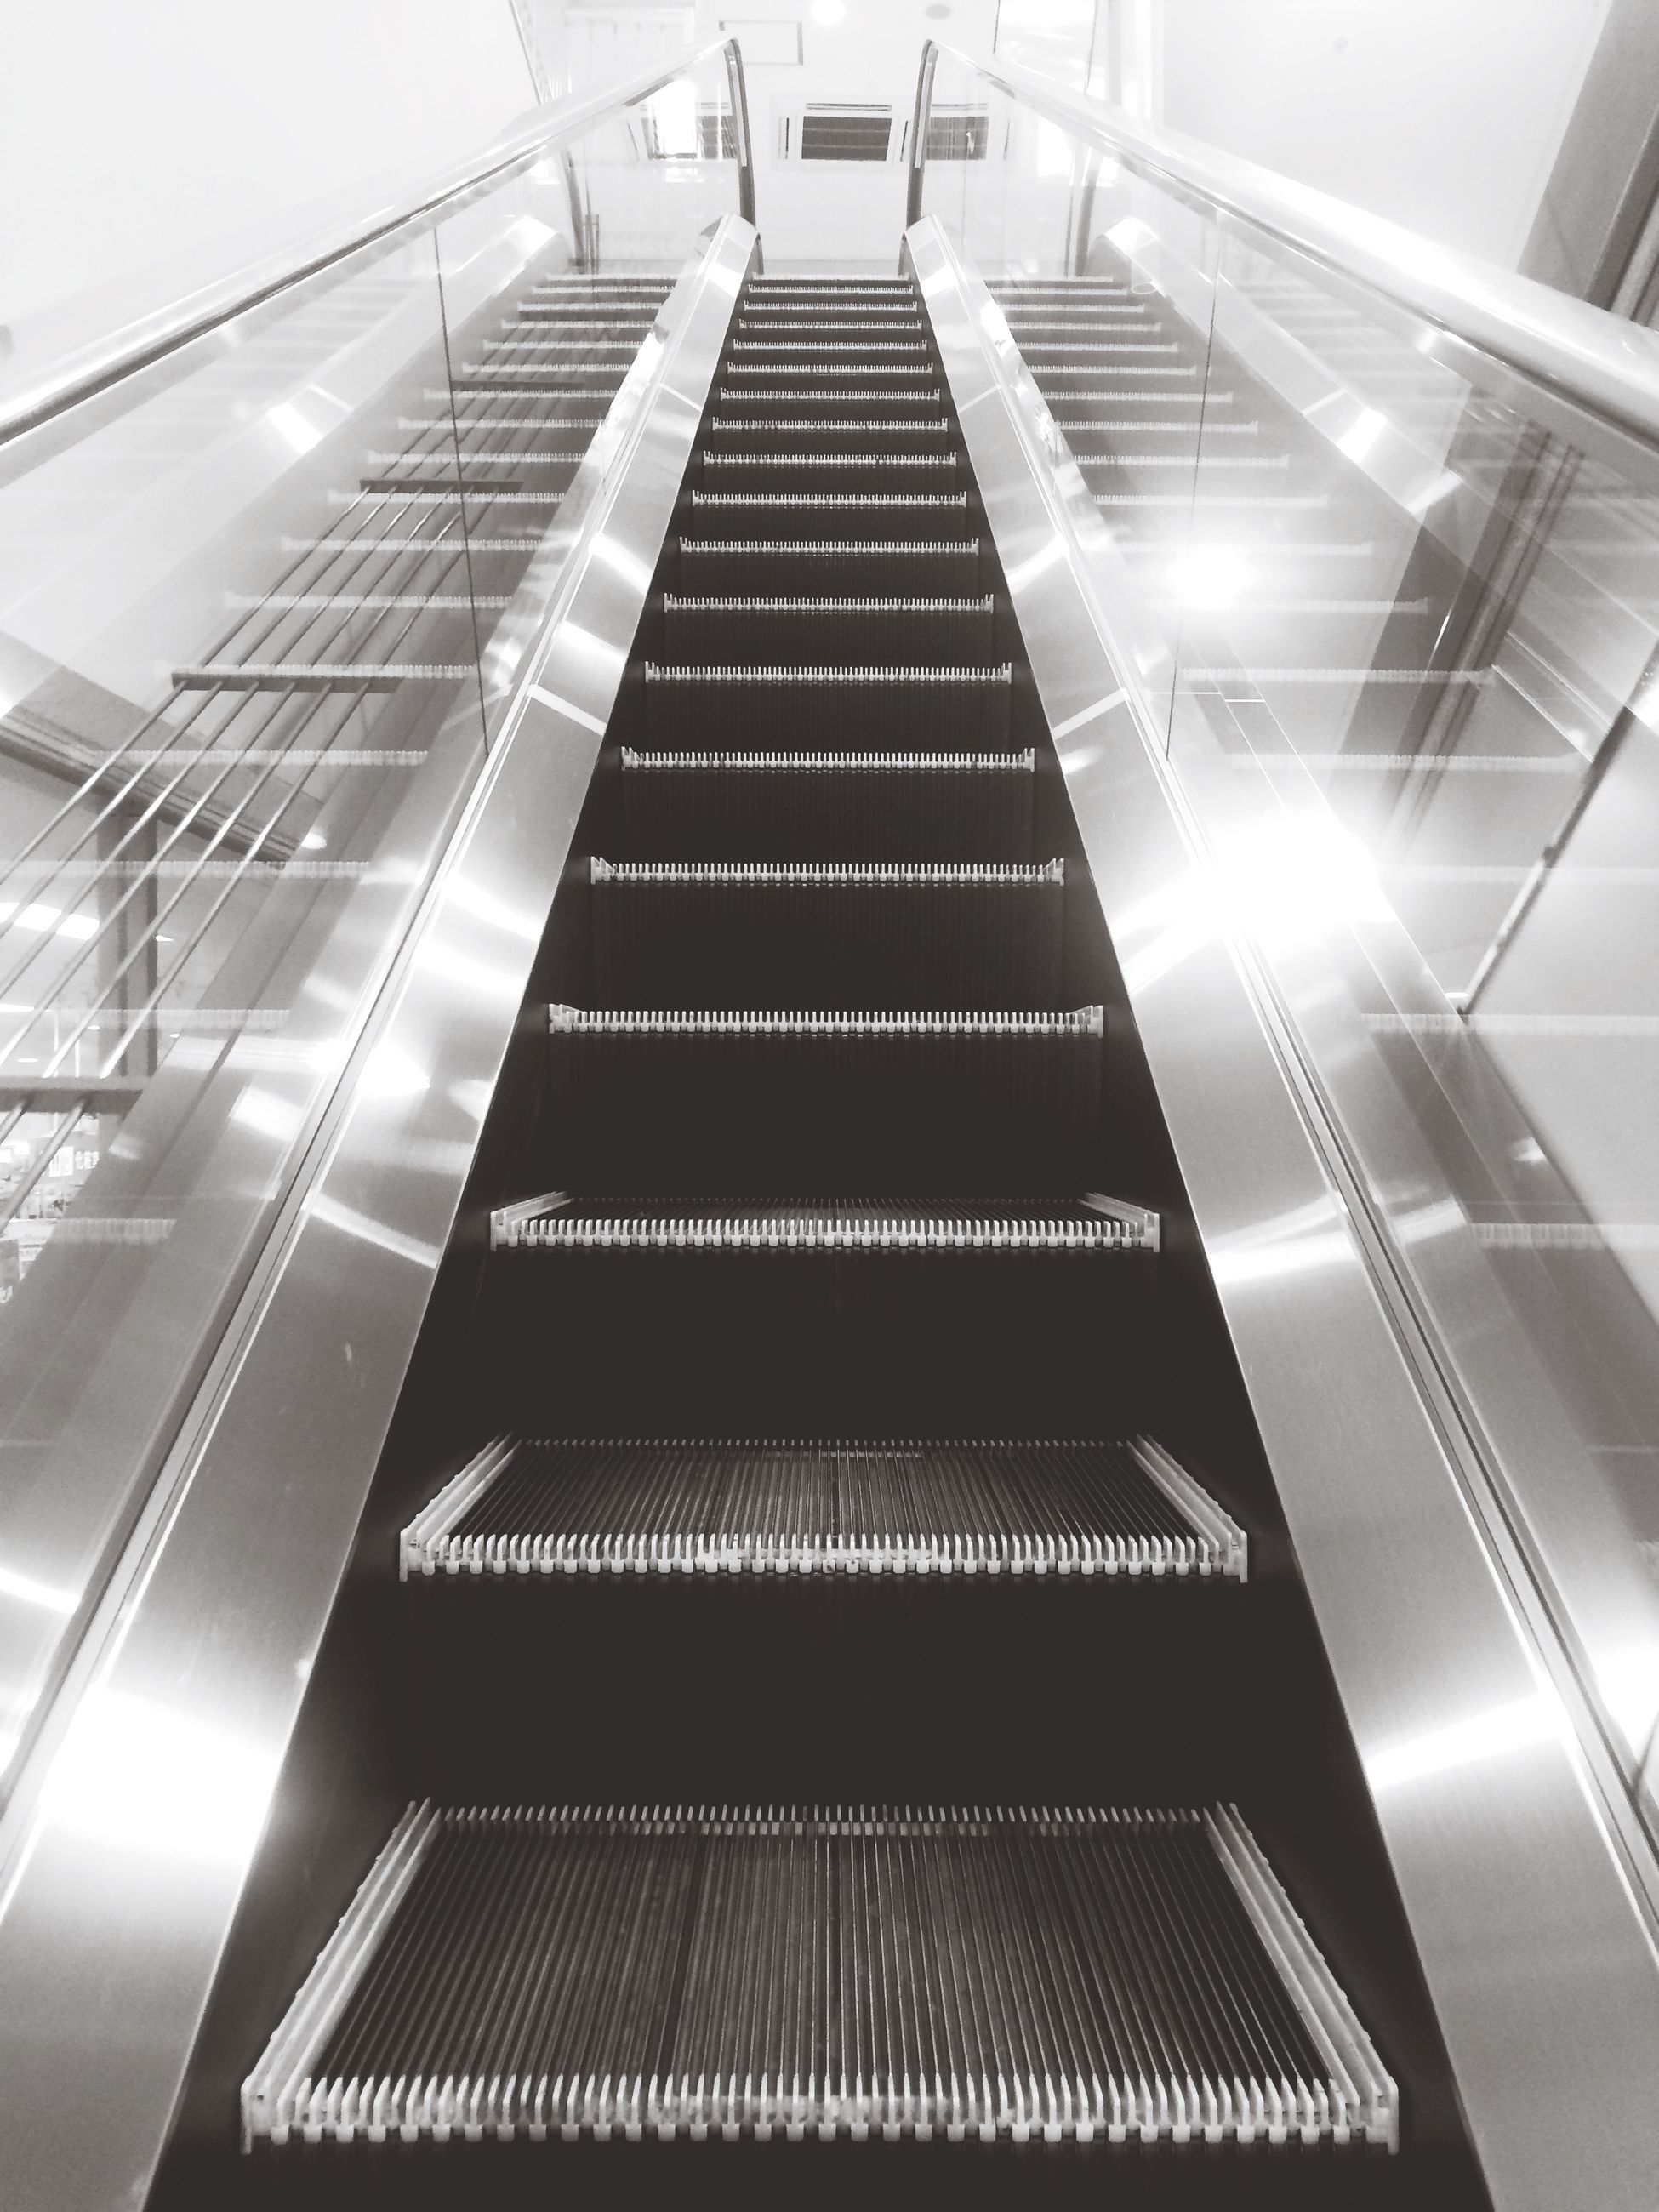 low angle view, architecture, modern, built structure, steps and staircases, indoors, staircase, railing, steps, building exterior, building, sunlight, reflection, escalator, office building, glass - material, city, diminishing perspective, no people, the way forward